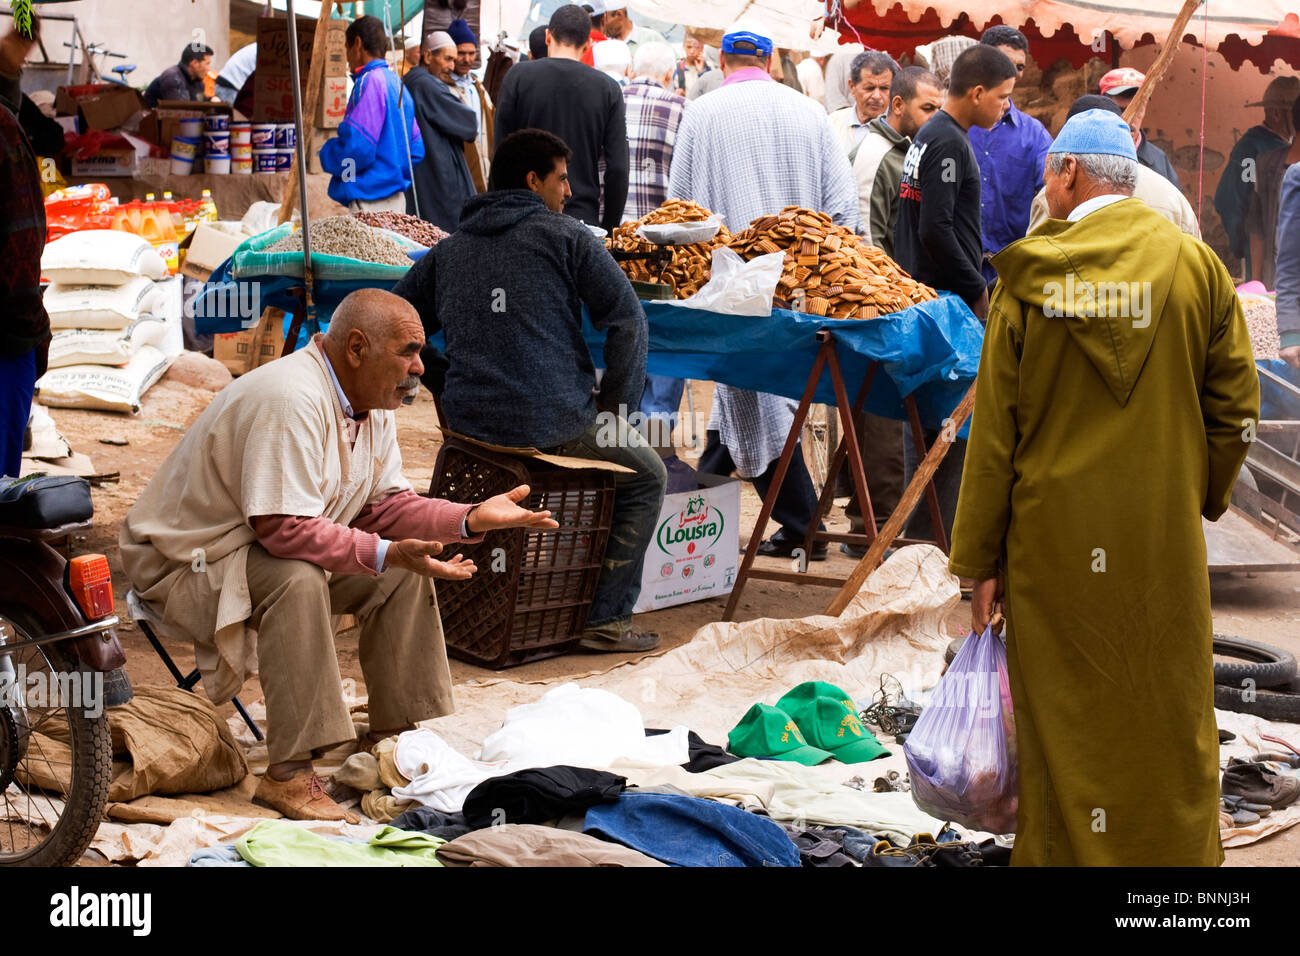 Friday Market Conversation in the Ourika Valley, Morocco - Stock Image